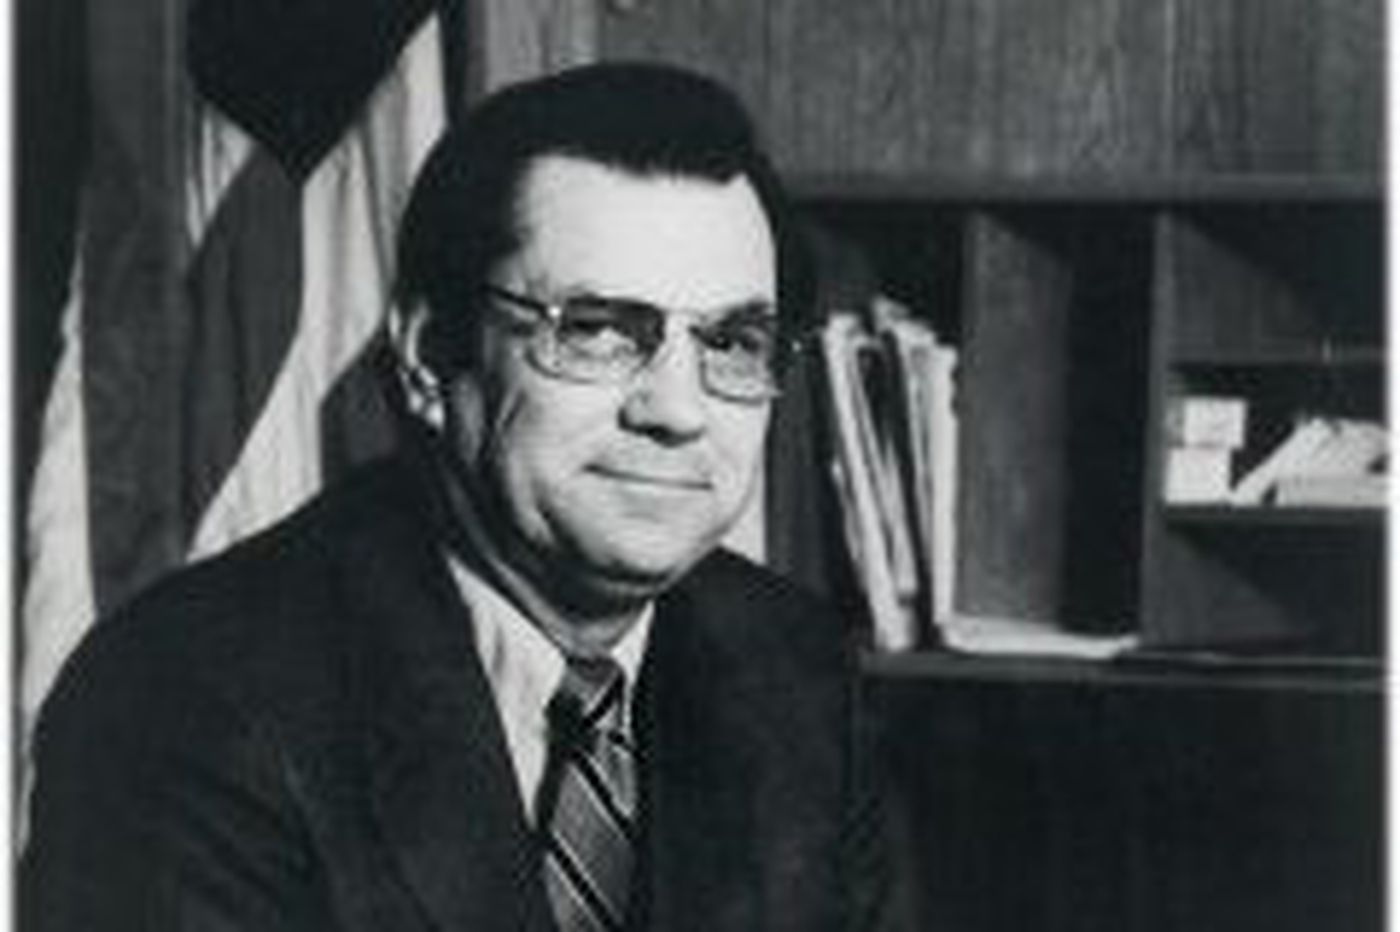 Neil J. Welch, 90, FBI agent who oversaw Abscam investigation